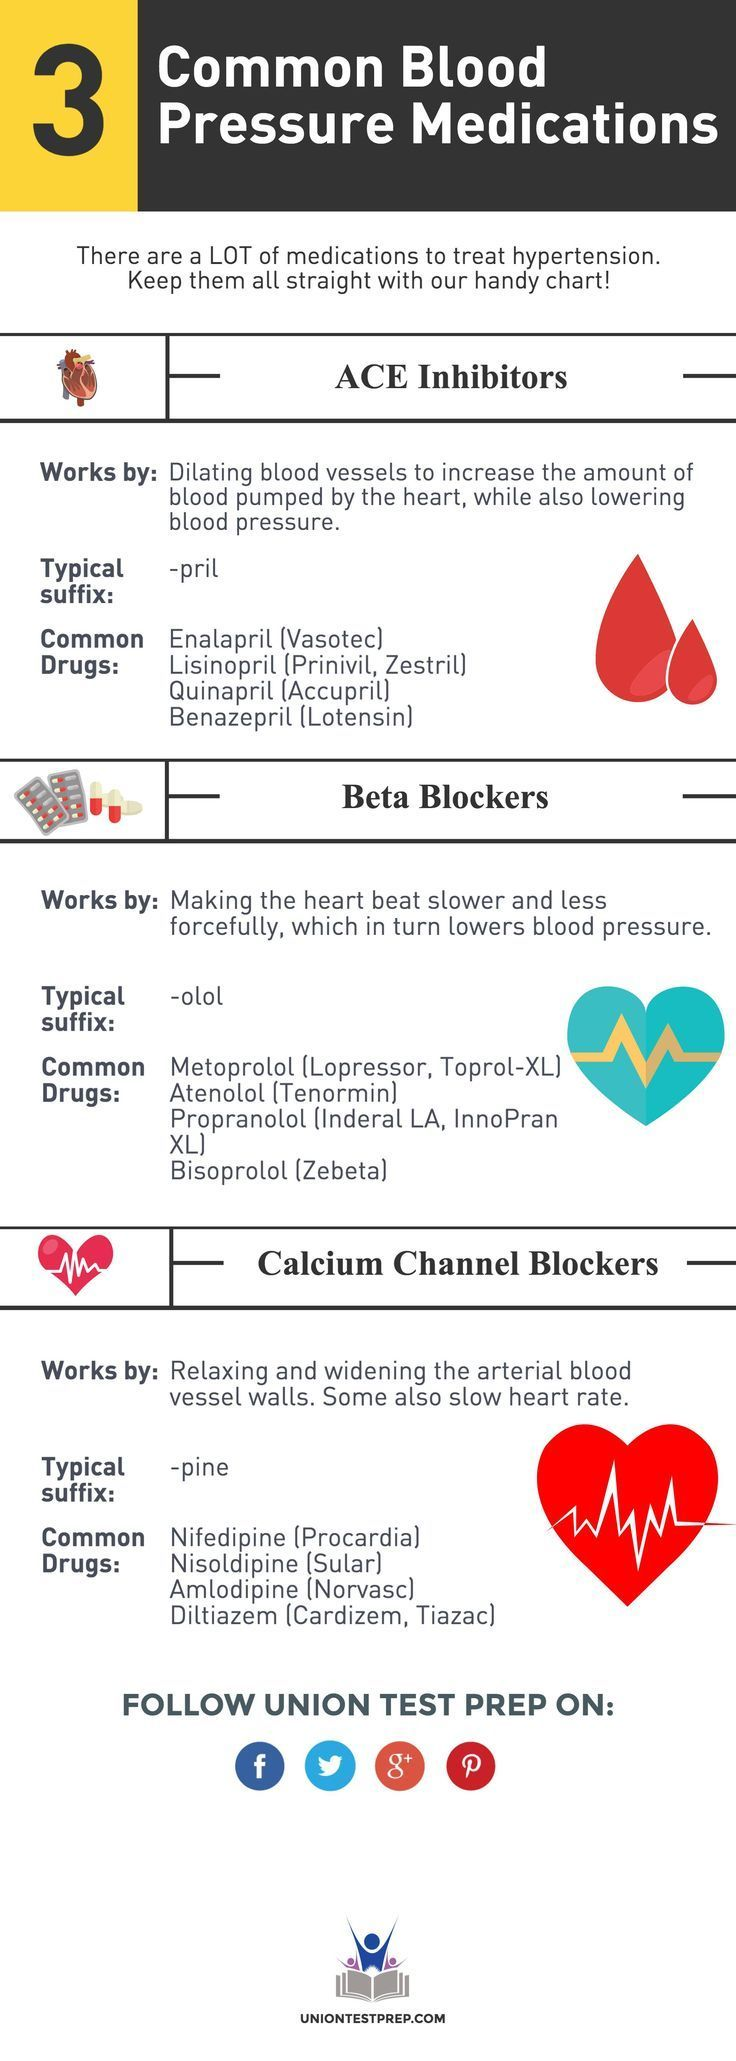 Common blood pressure medications every nurse should know!